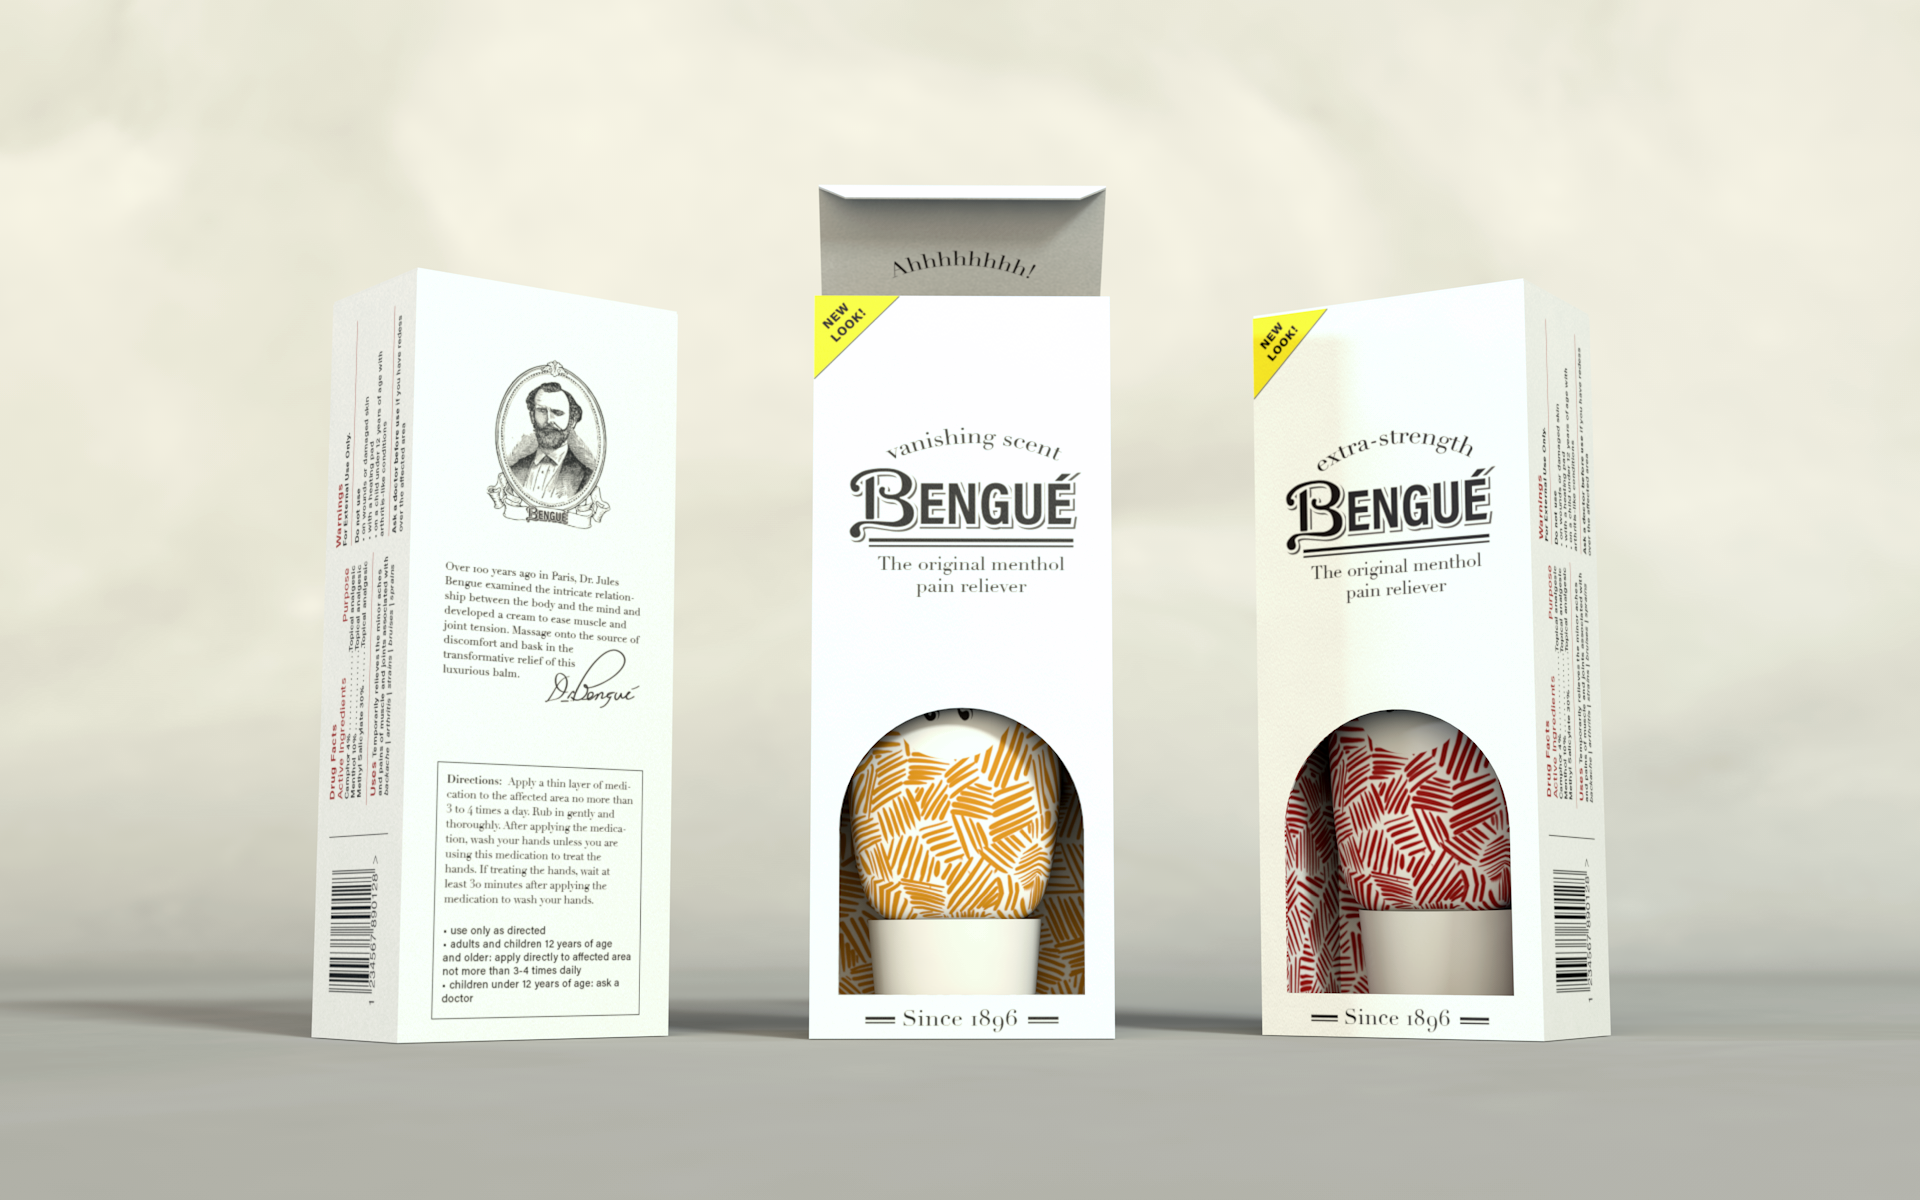 New package design features Dr. Bengué's portrait and the product's origin story on the back. Rendering by Zak Vono.